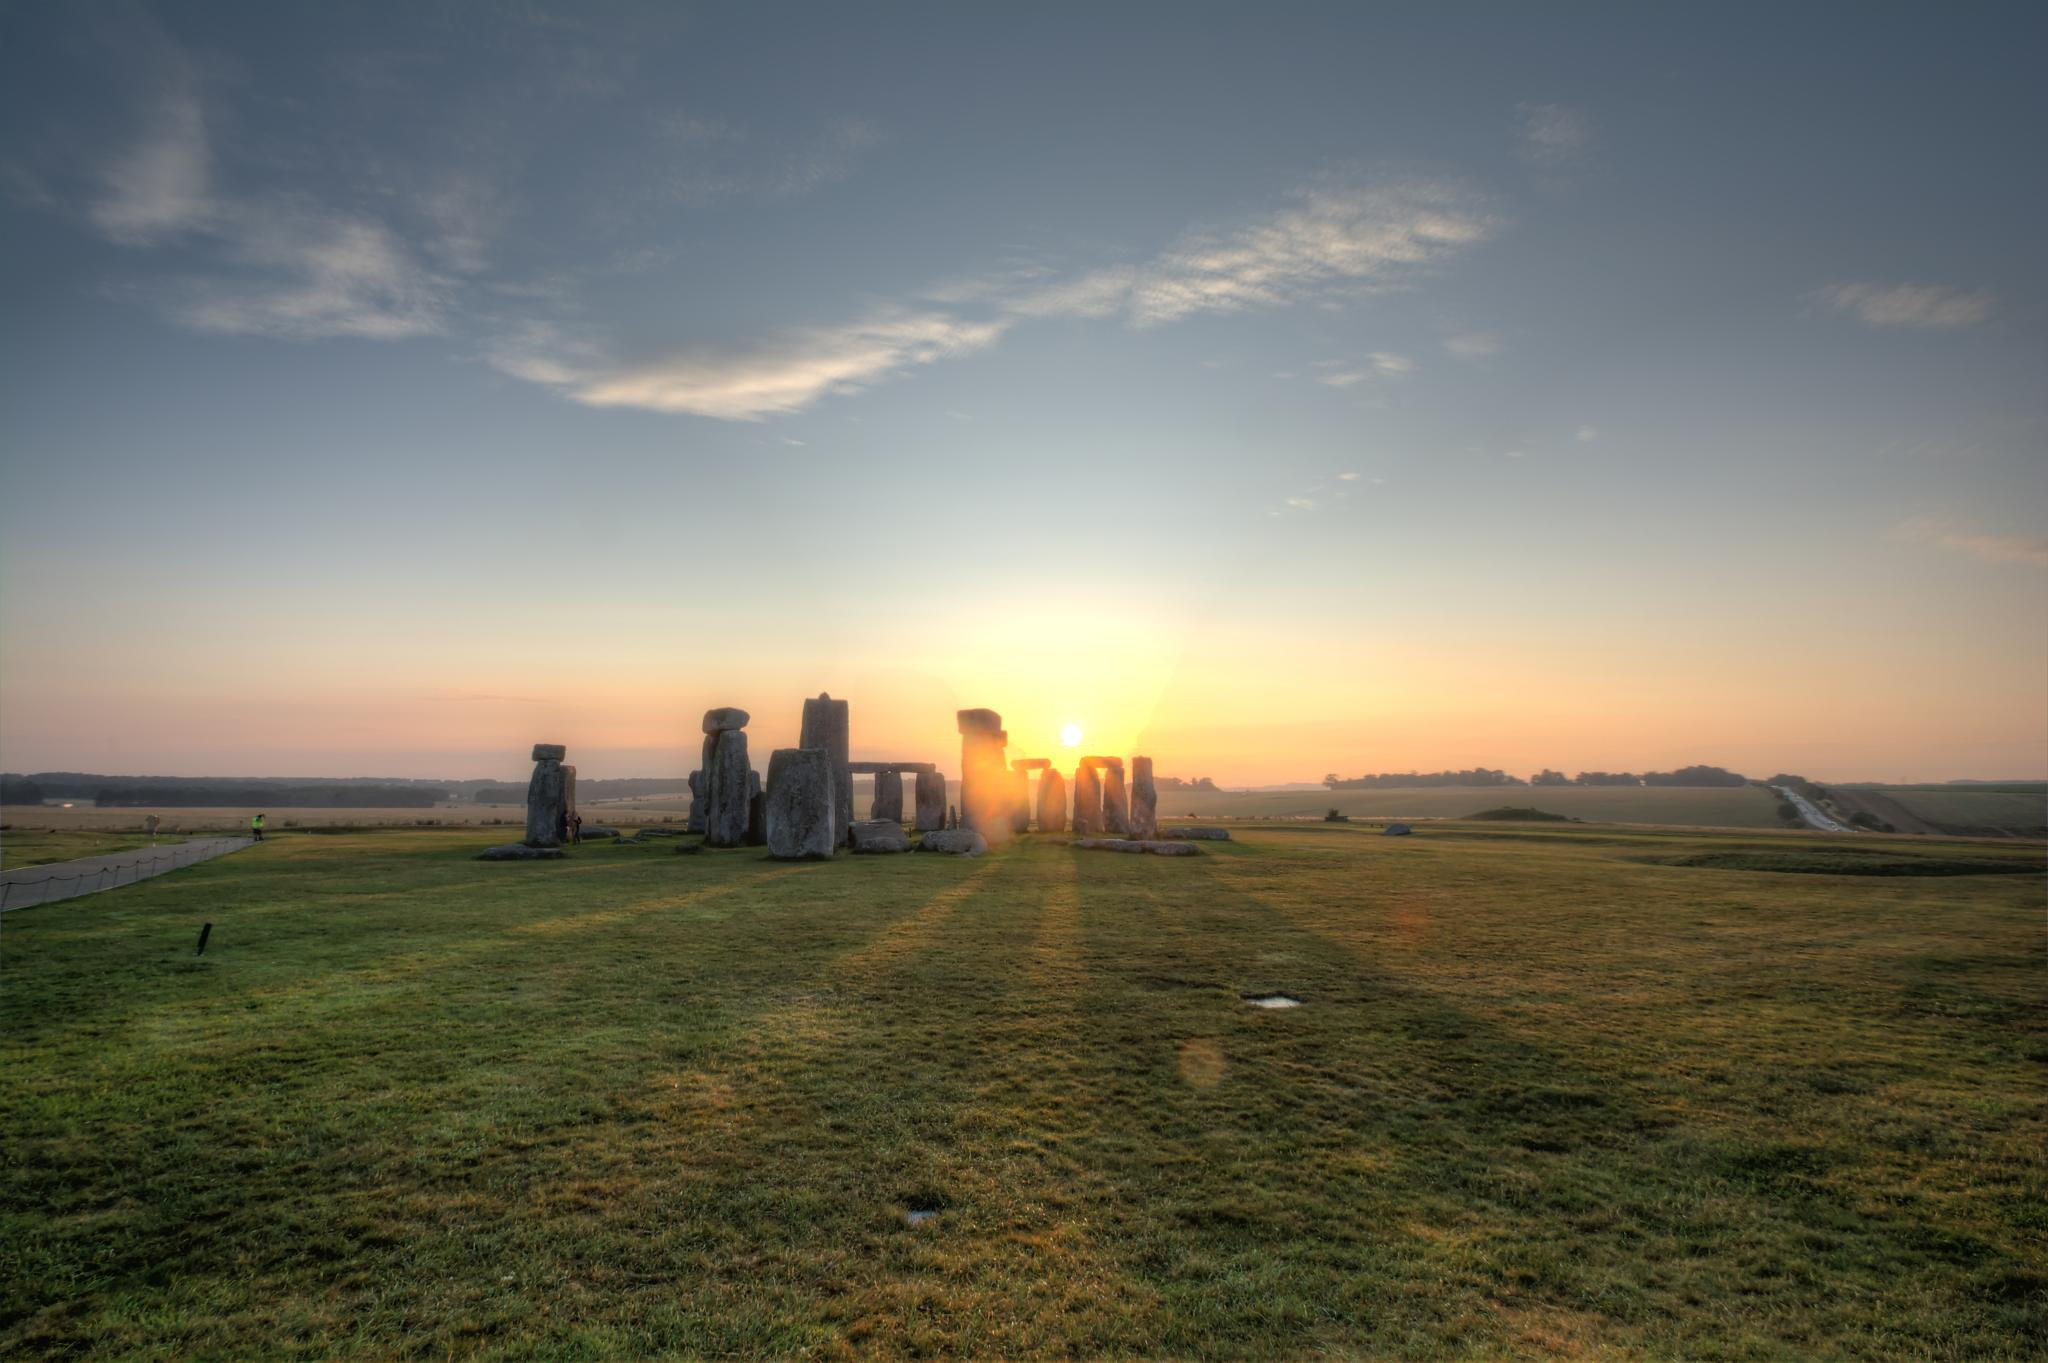 Stonehenge Dawn by John McNeilly